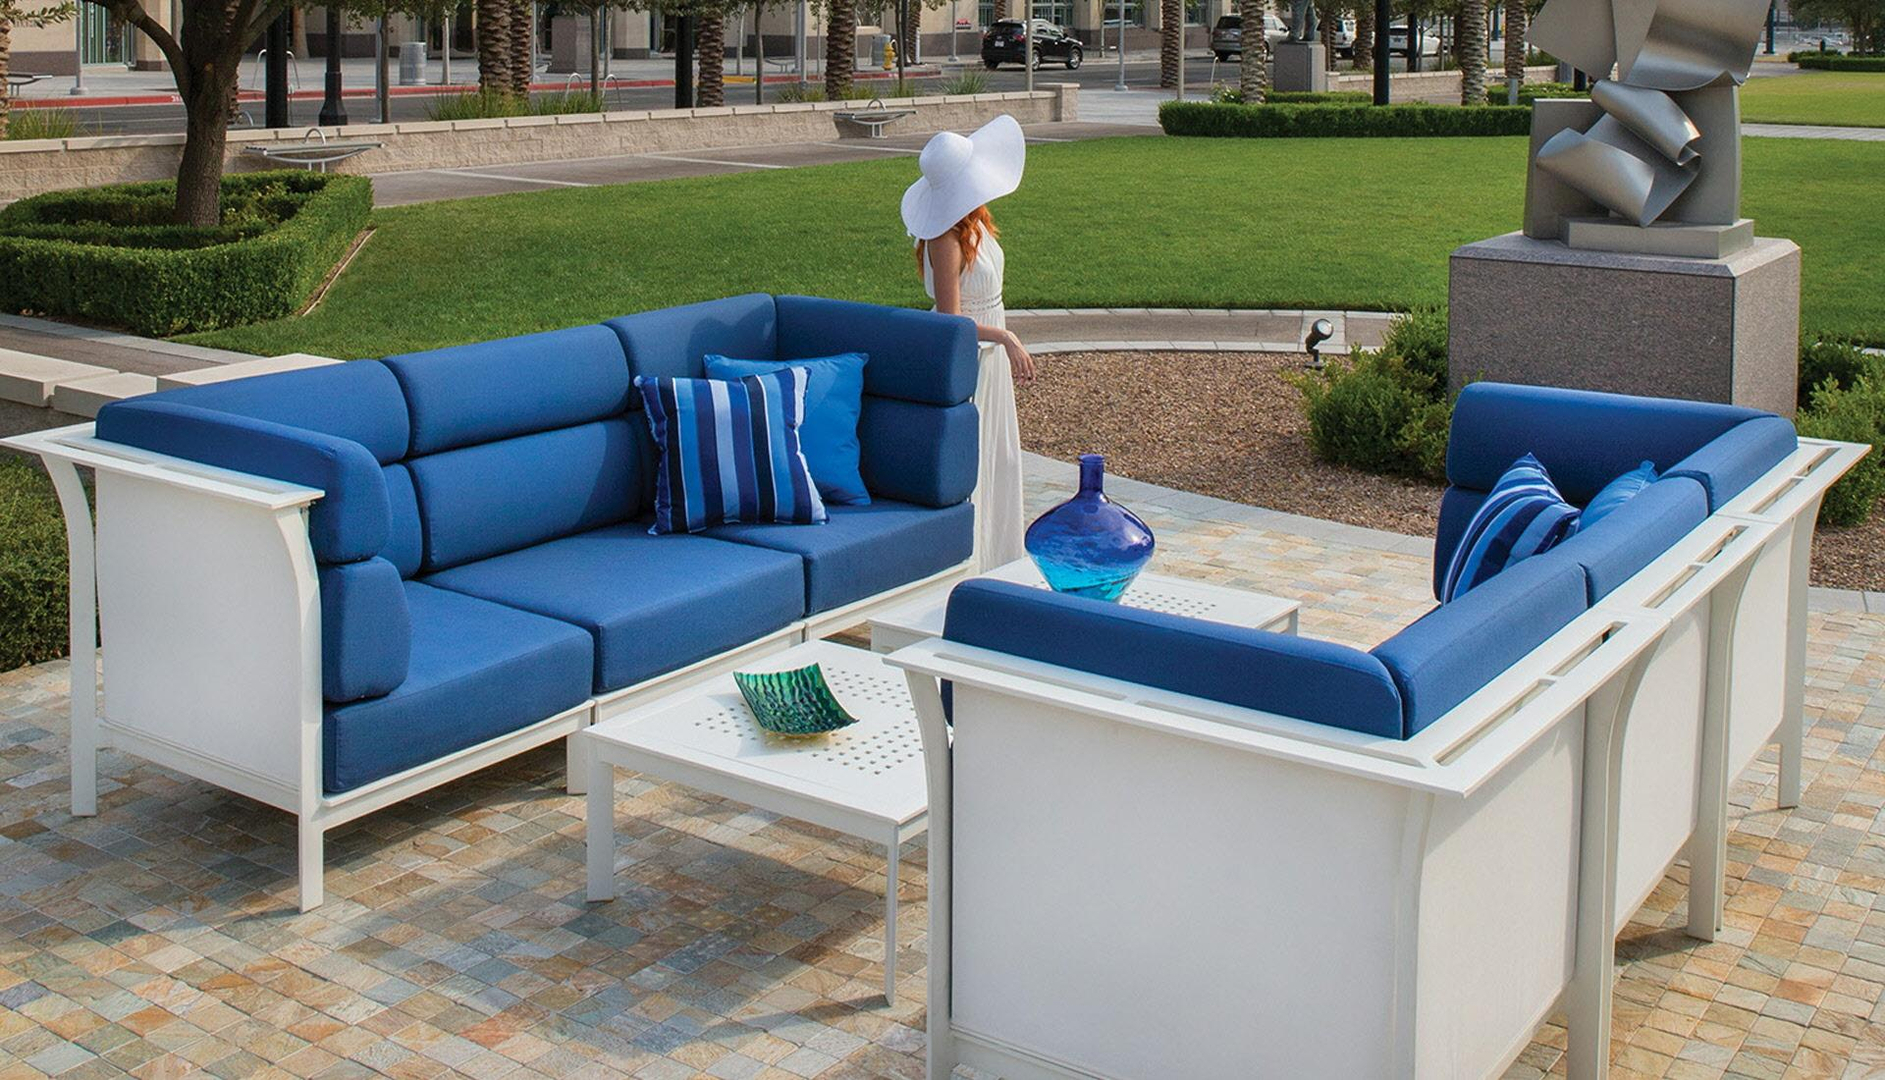 Commercial Outdoor Furniture, Wicker Outdoor Furniture - Crider ...